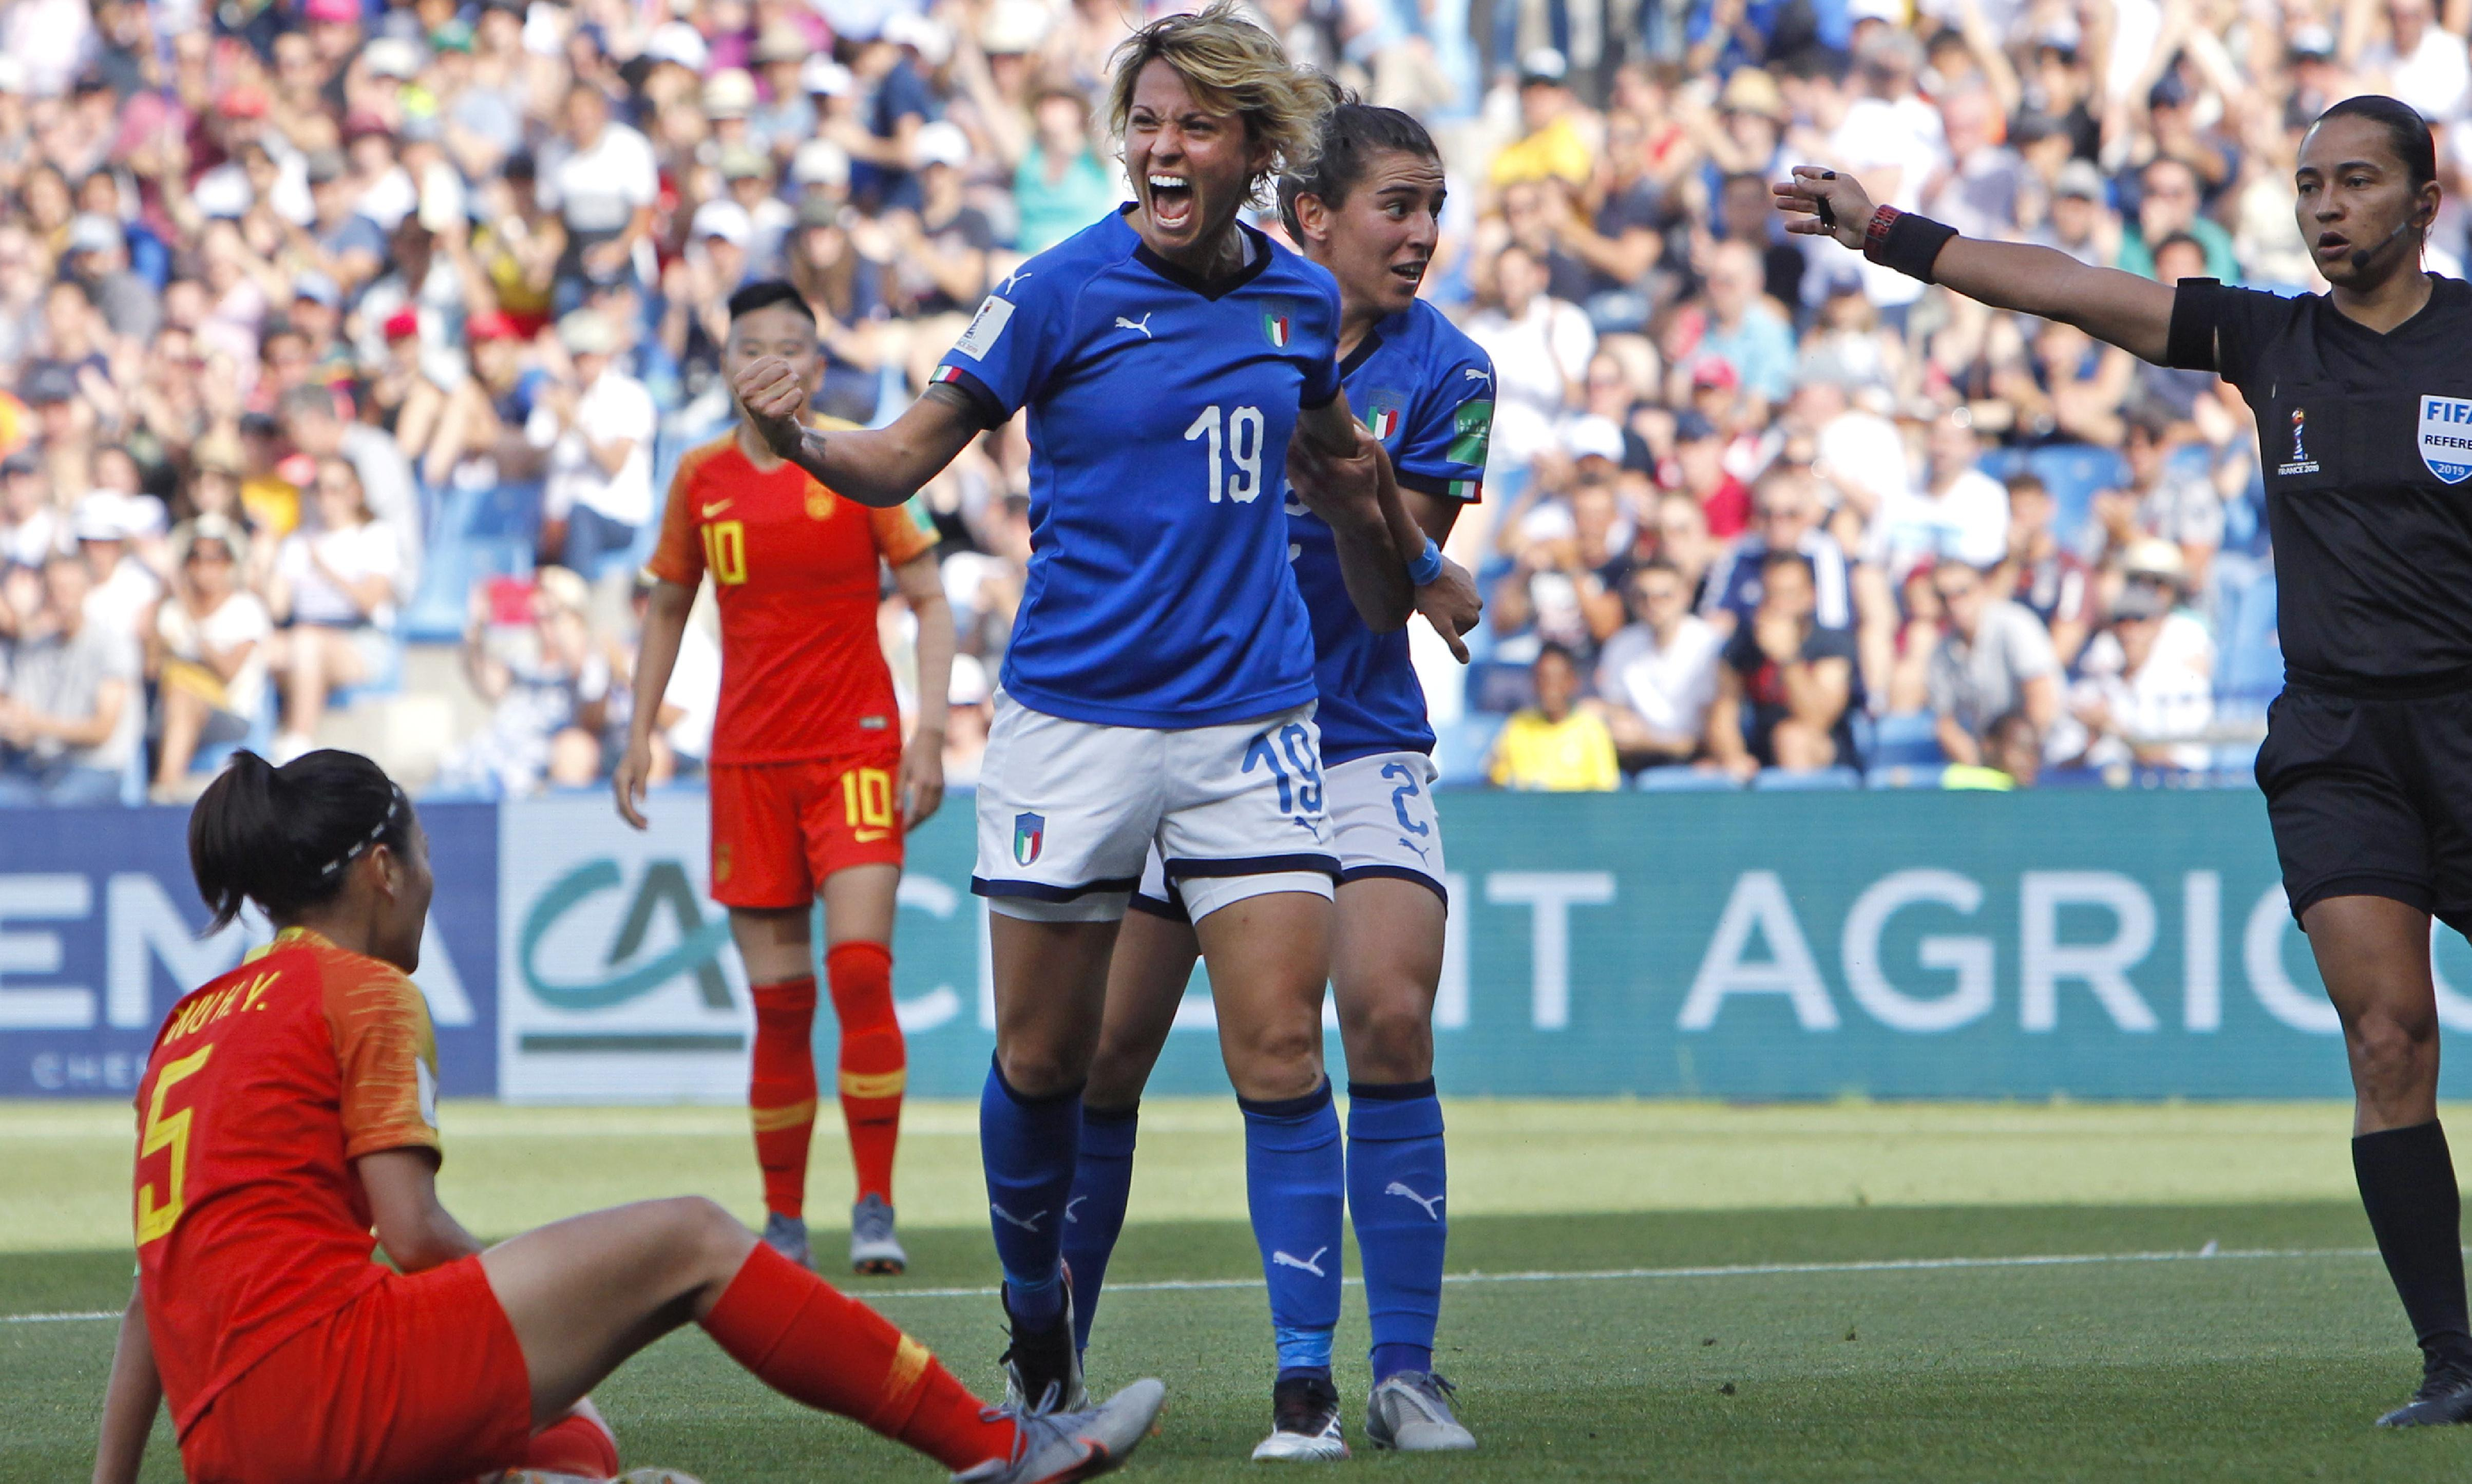 Valentina Giacinti steers Italy into quarter-finals as China brushed asides